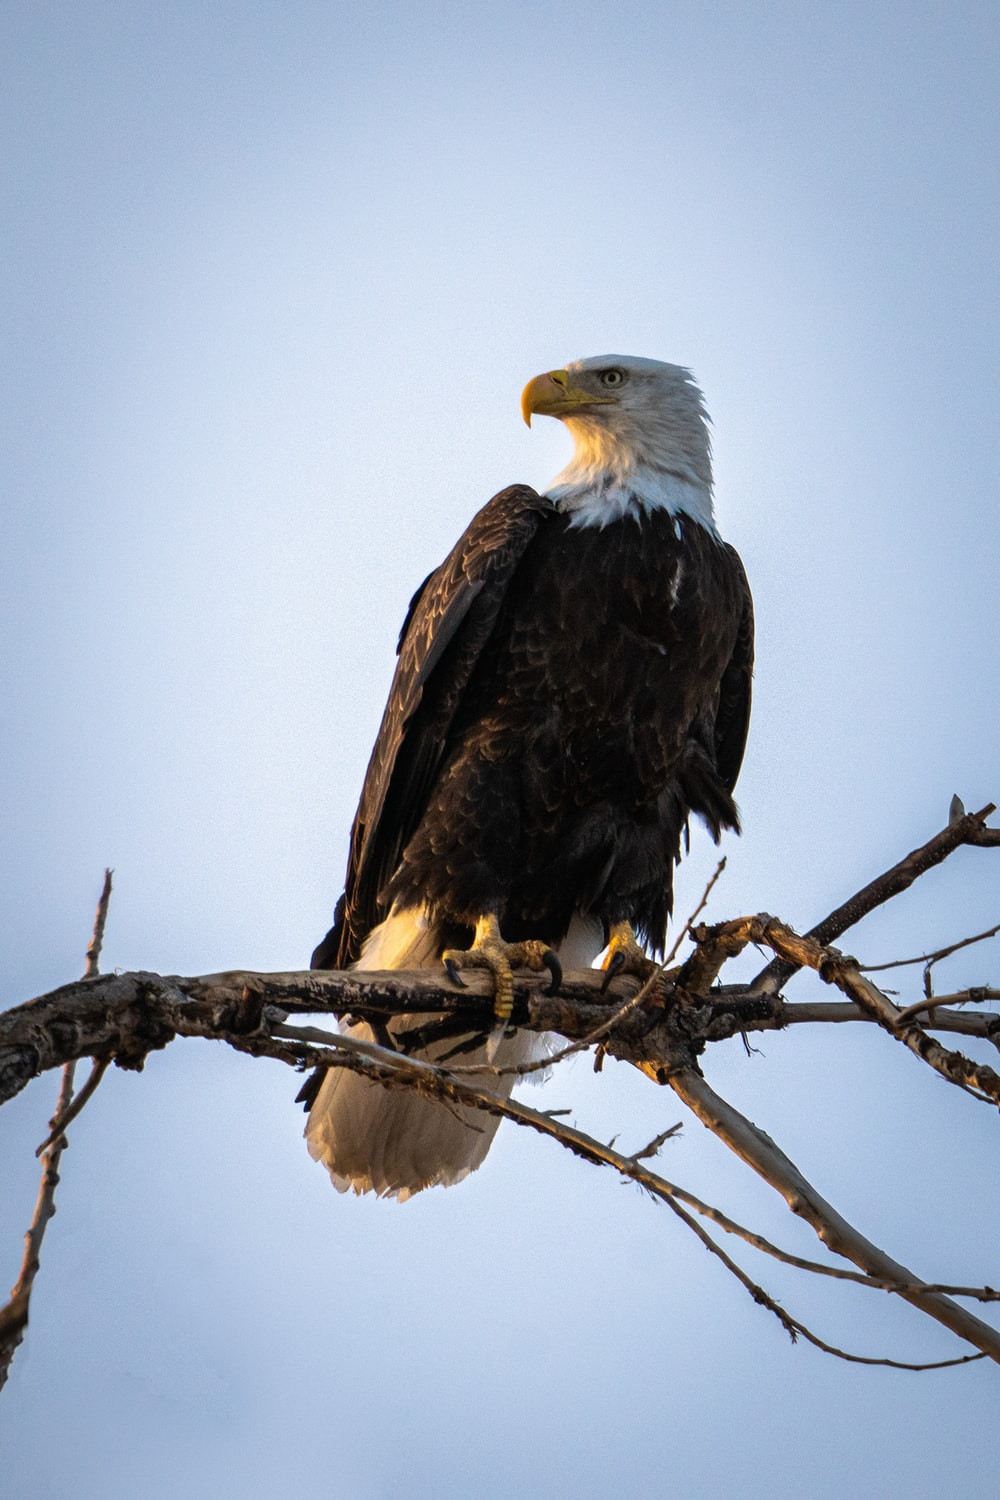 black and white eagle on brown tree branch